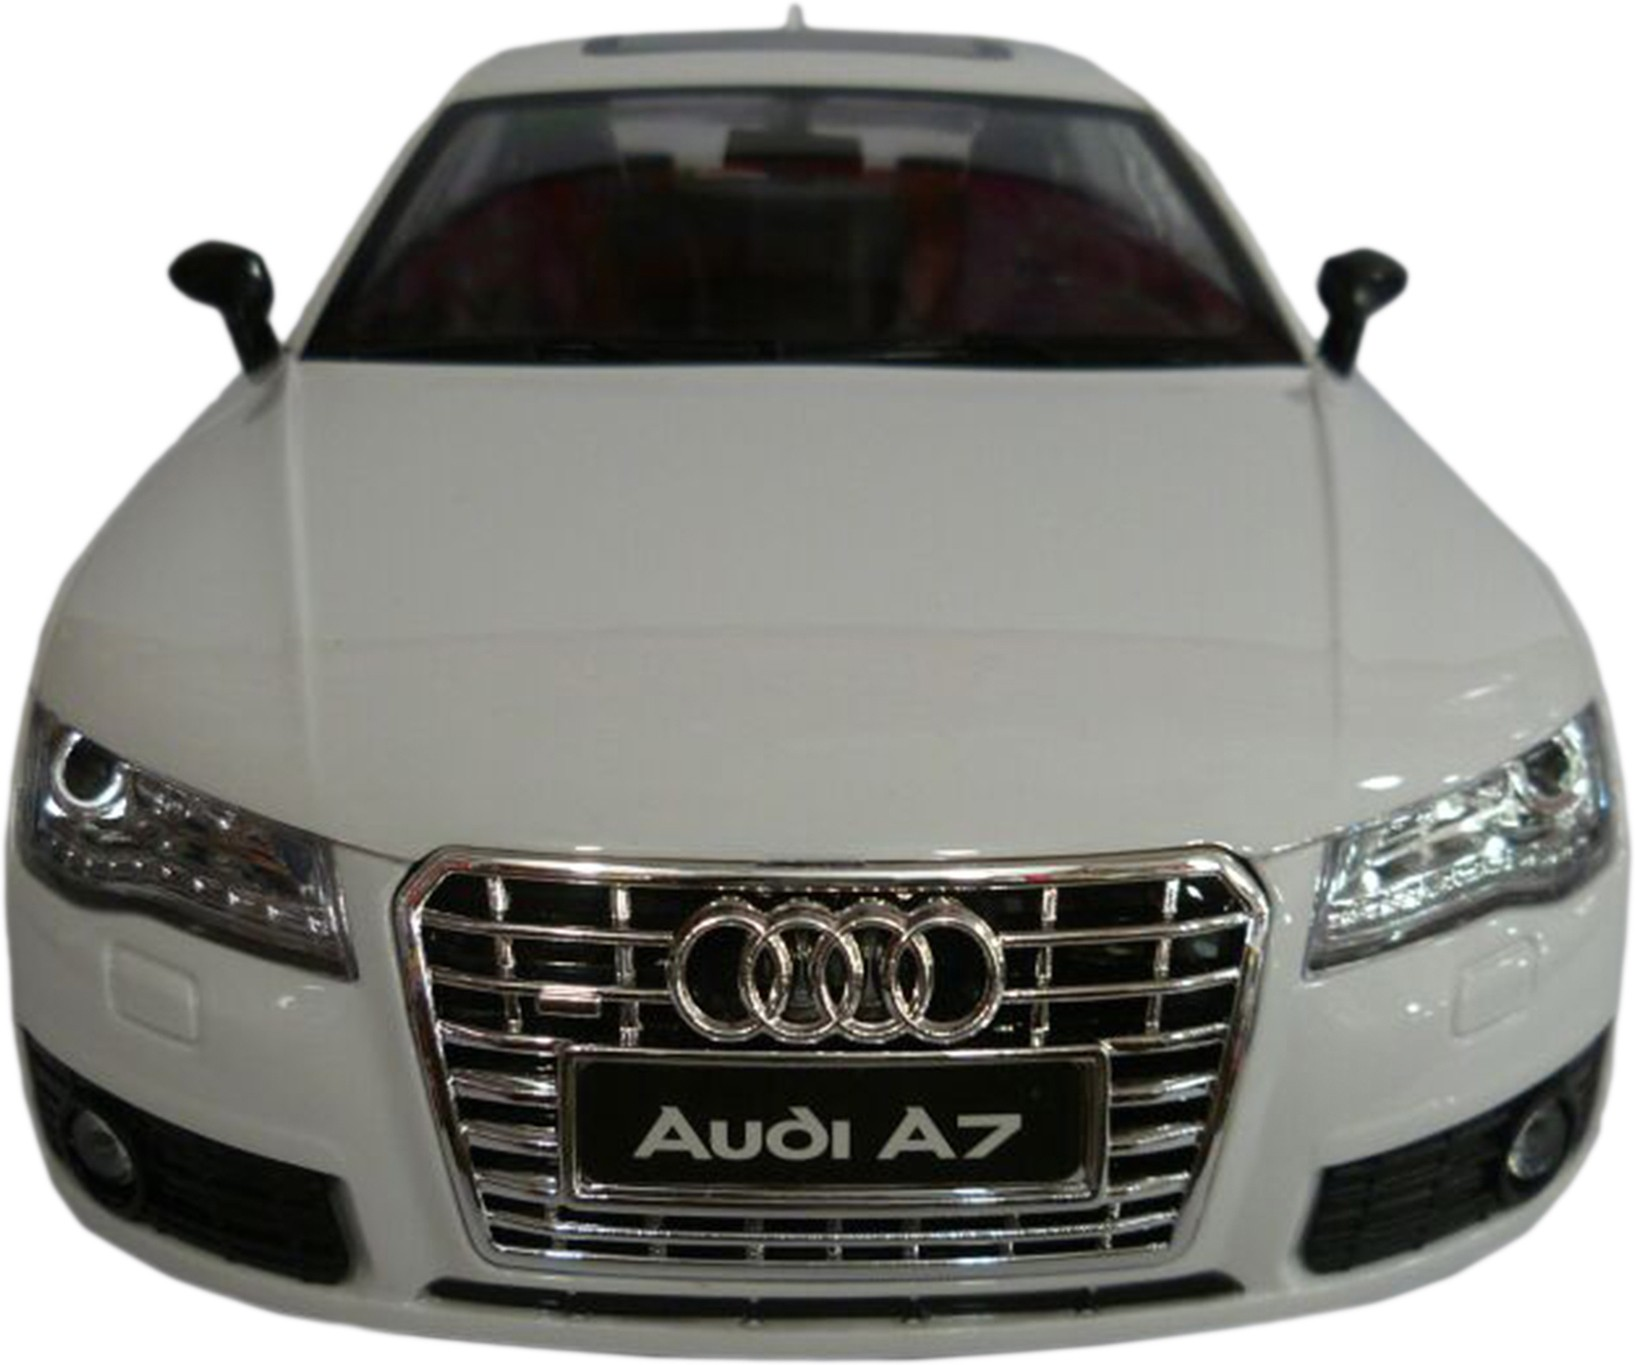 OFF On ABB Audi A Remote Control Battery Operated Car On - Audi car lowest model price